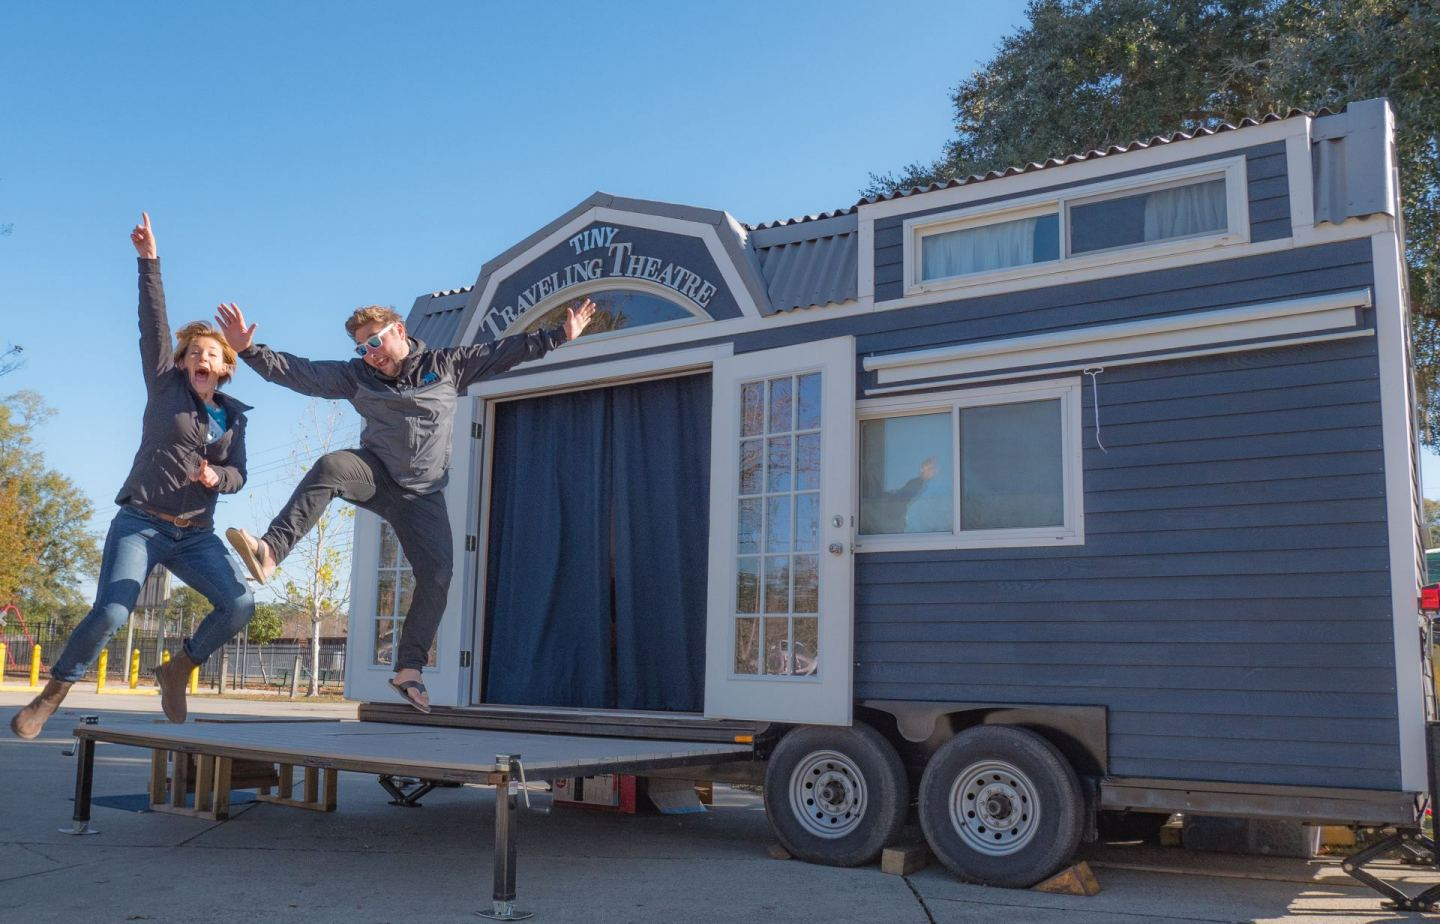 Their Tiny House Converts Into a Traveling Theater